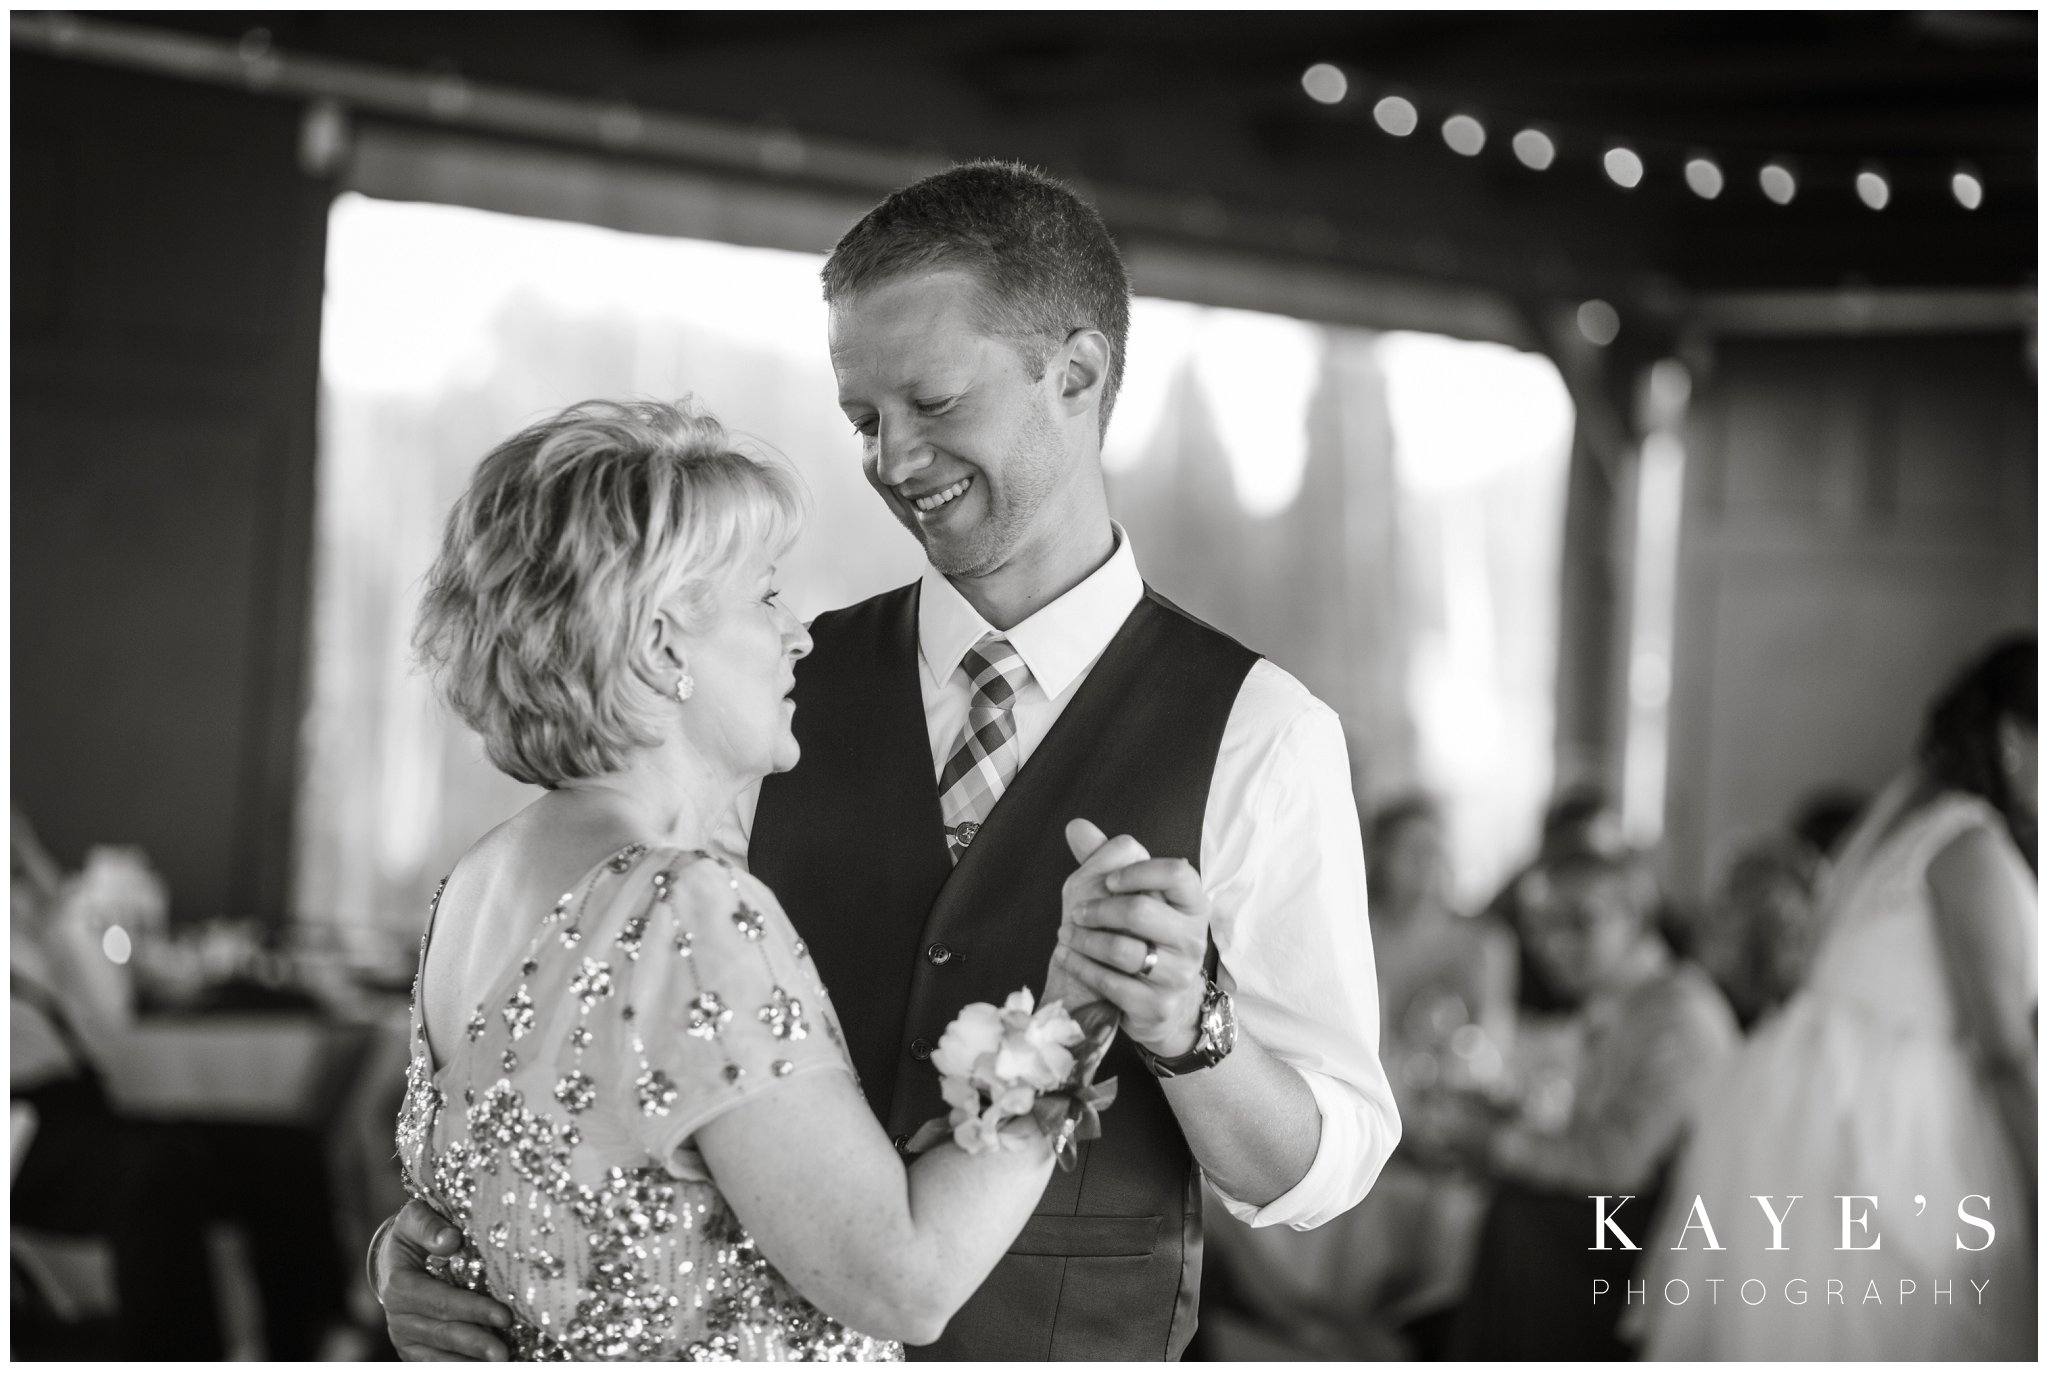 Kayes Photography- howell-michigan-wedding-photographer_0764.jpg